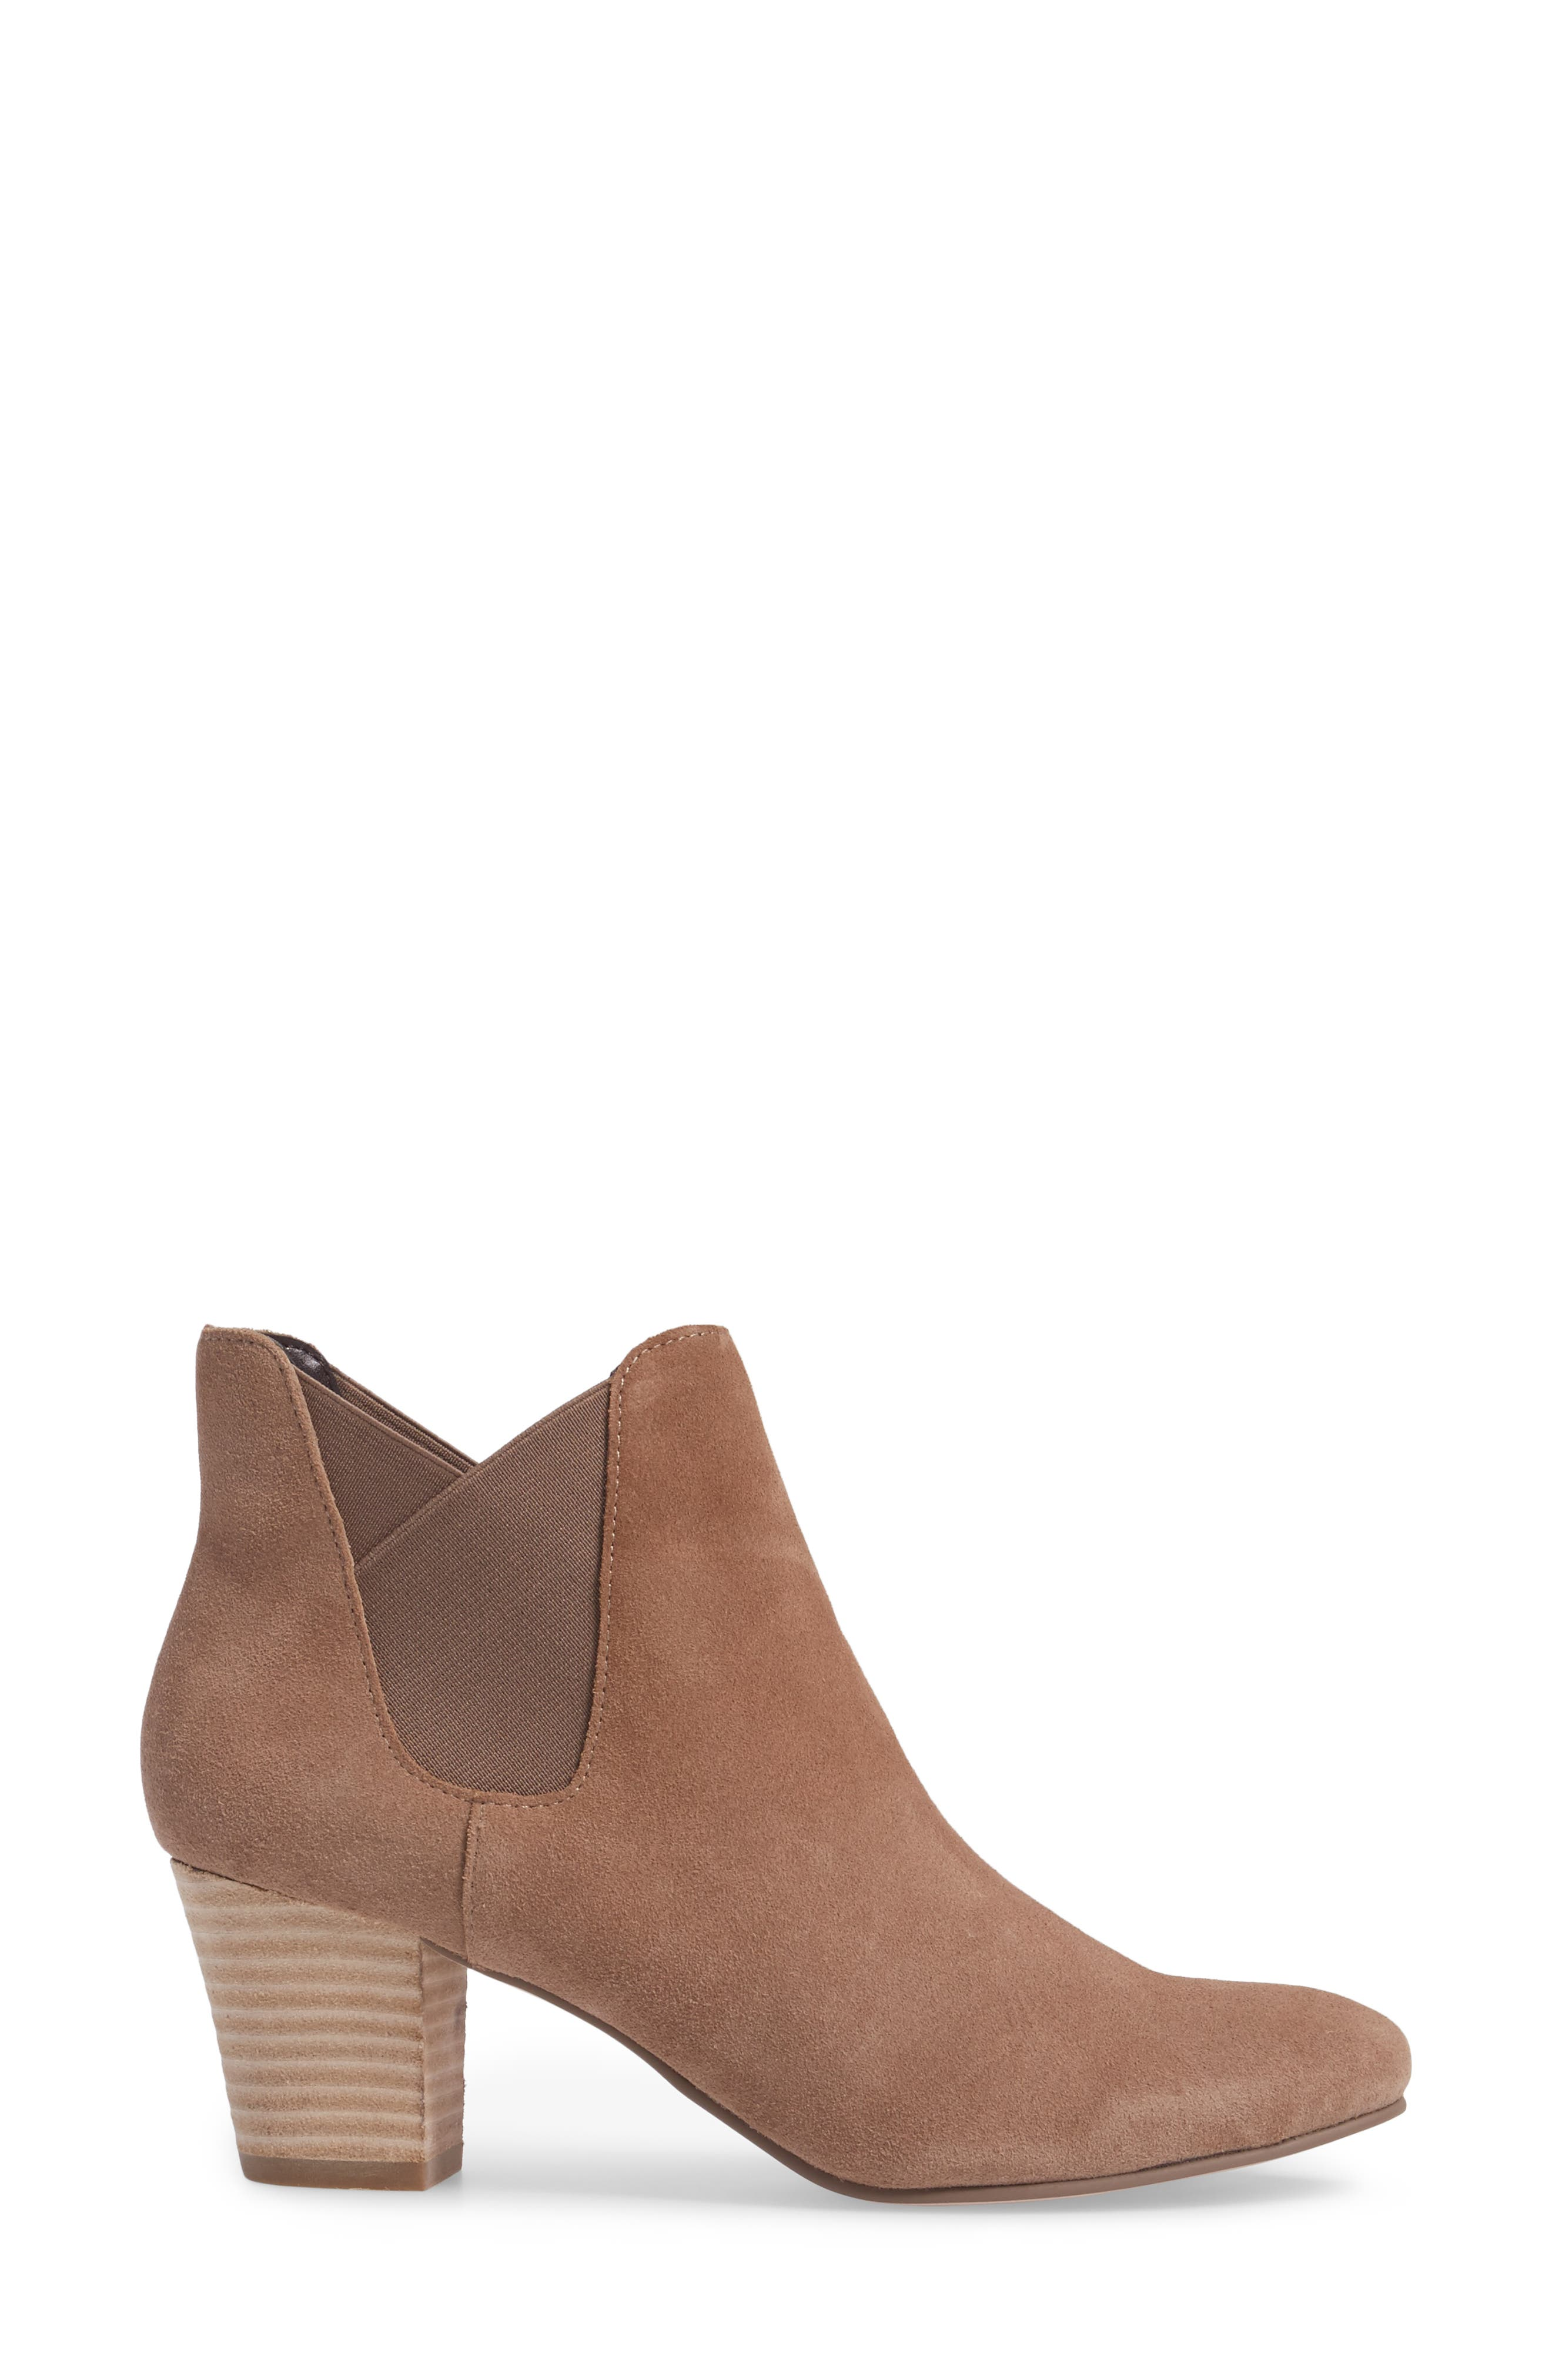 Alternate Image 3  - Sole Society Acacia Bootie (Women)